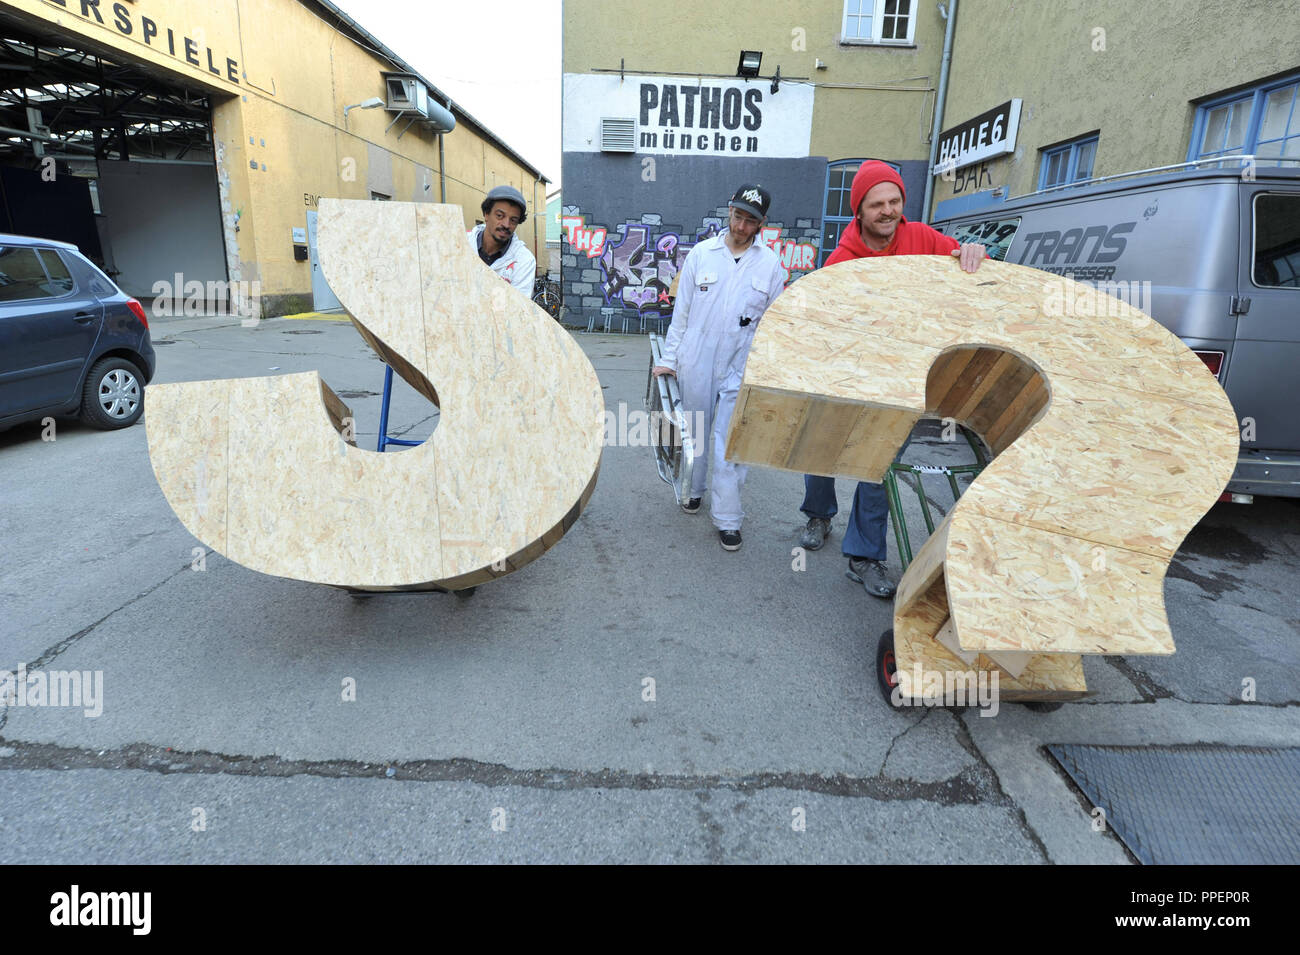 The campaign 'What's the deal' - an EU-wide art project on sustainability. In the picture the Munich-based participants Matthias Wiegele (left), Philip Metz (middle) and Tuncay Acar (right) set up in front of Hall 6 at the Dachauerstrasse their nomadic sculpture 'Die 3 Fragezeichen' (The 3 Question Marks), which later is to be converted into a skateboard ramp. - Stock Image